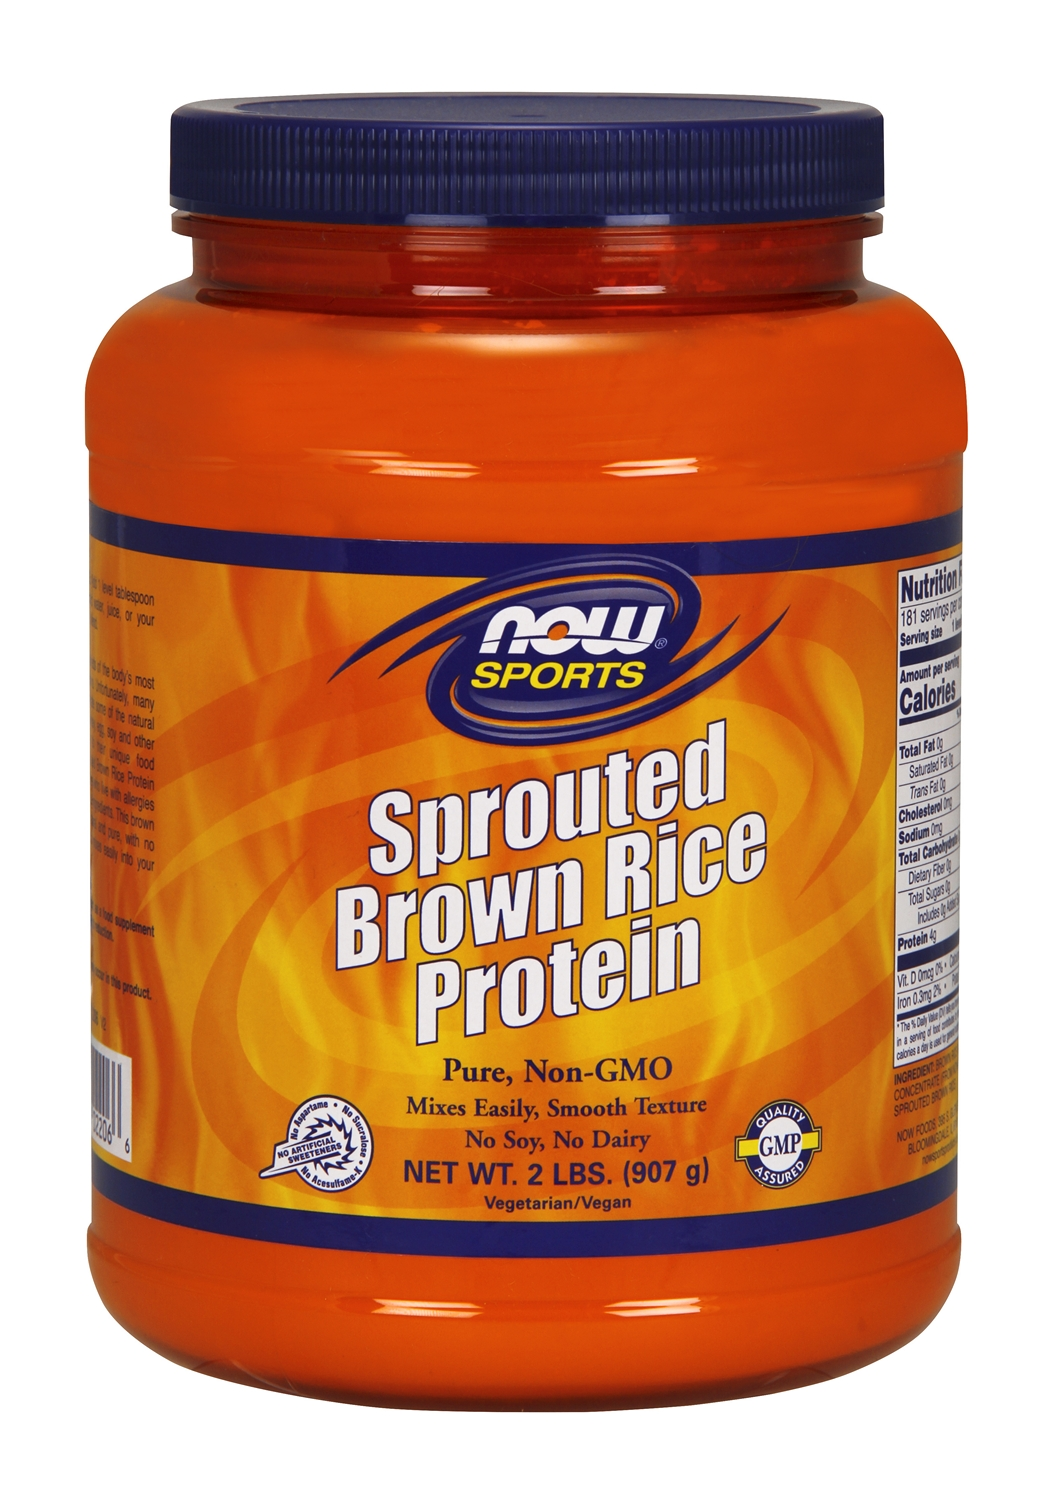 Sprouted Brown Rice Protein 2 lbs by NOW